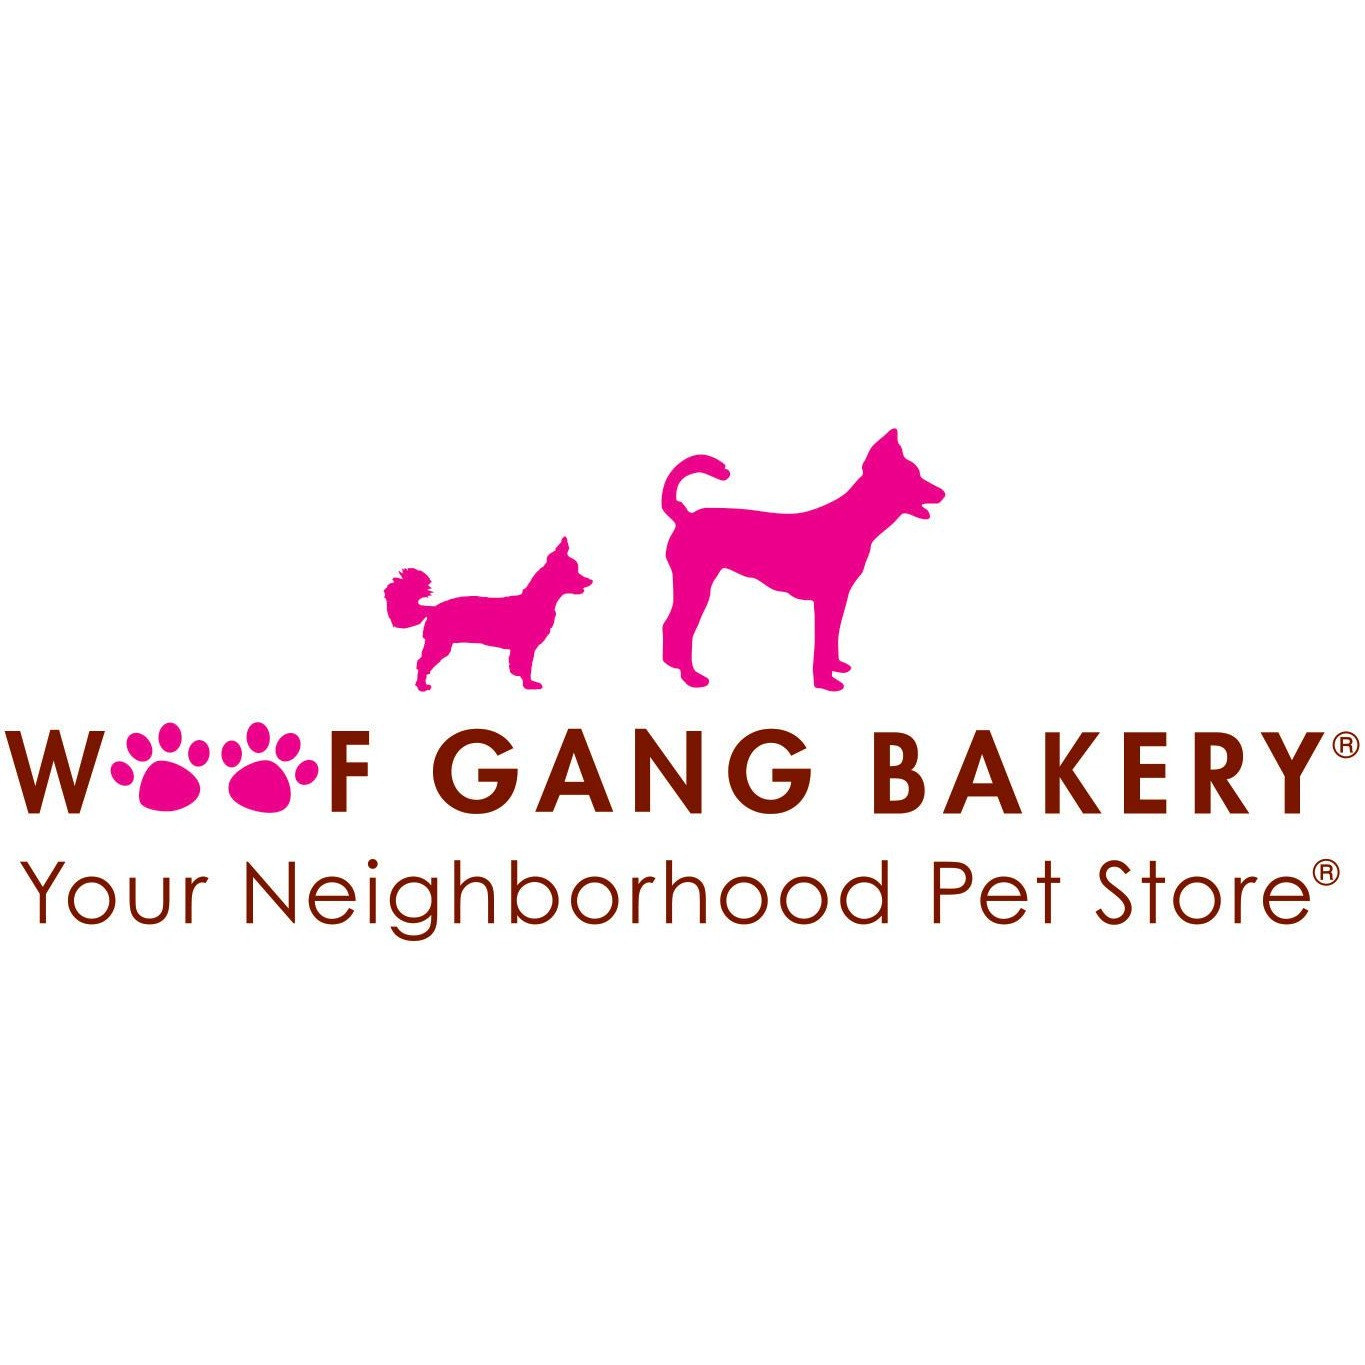 Looking for the best natural dog food brands near you? Our local pet market offers the best holistic dog & cat food brands in Aventura, FL. Talk to our pet experts today!